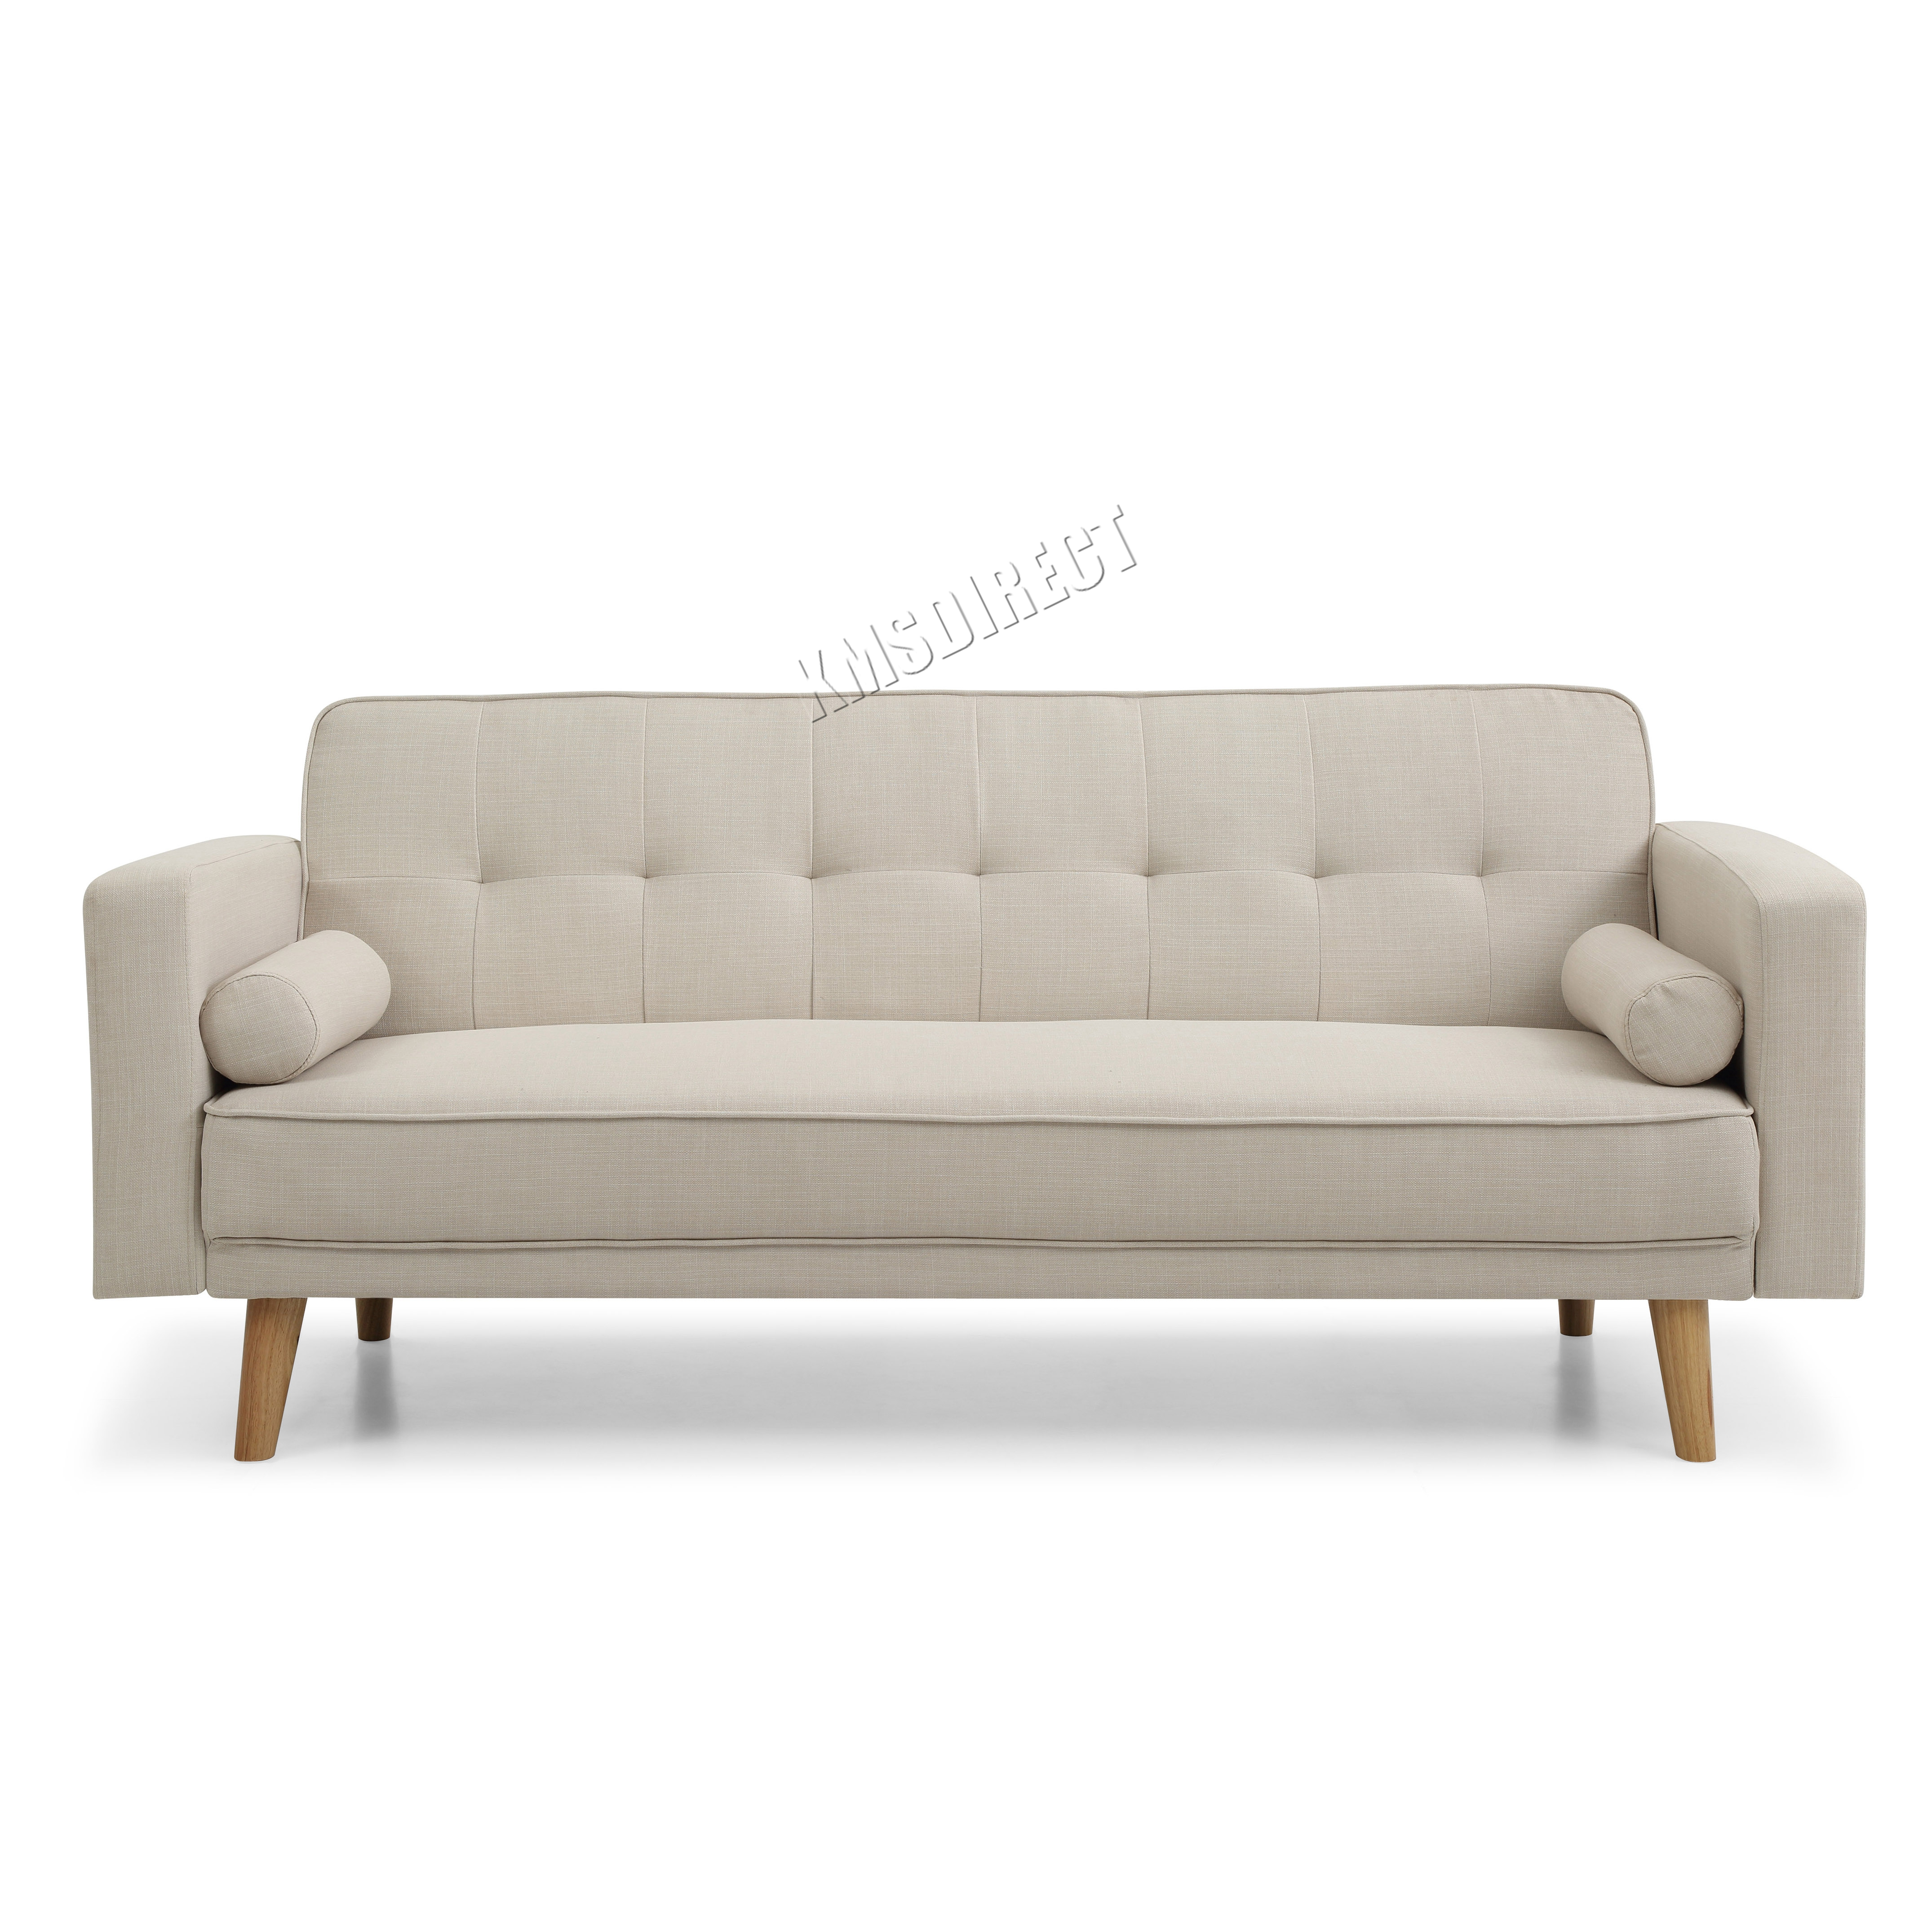 Sentinel Damaged Westwood Fabric Sofa Bed 3 Seater Couch Furniture Beige Fsb04